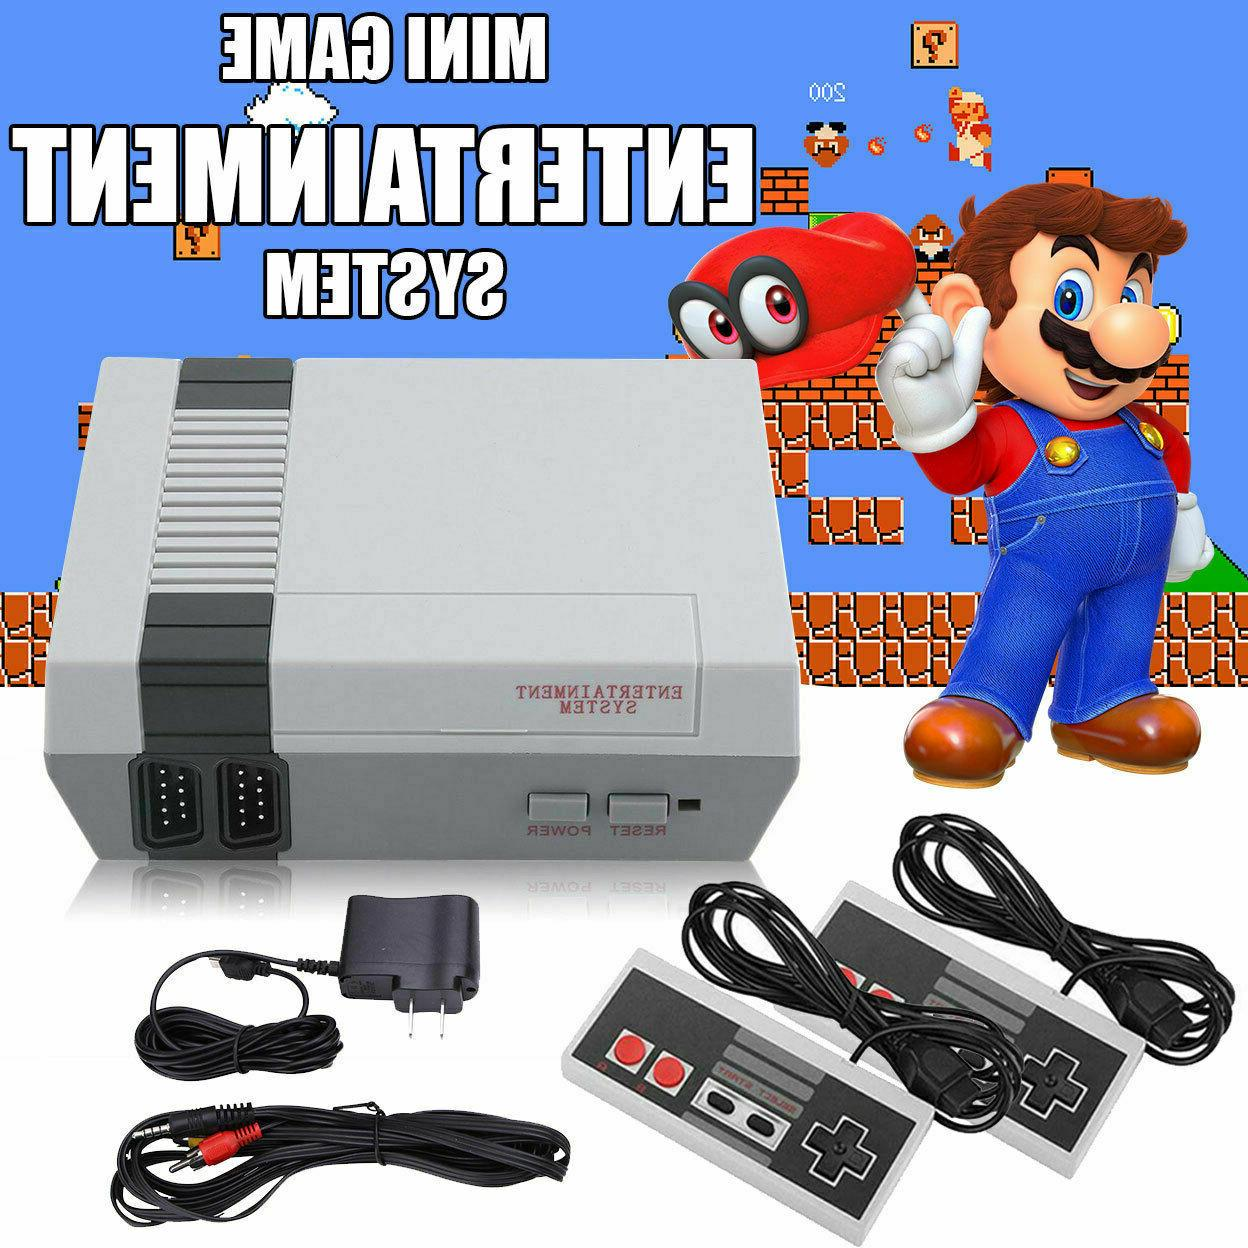 620 Games Built-in Entertainment Mini Classic Game Console w